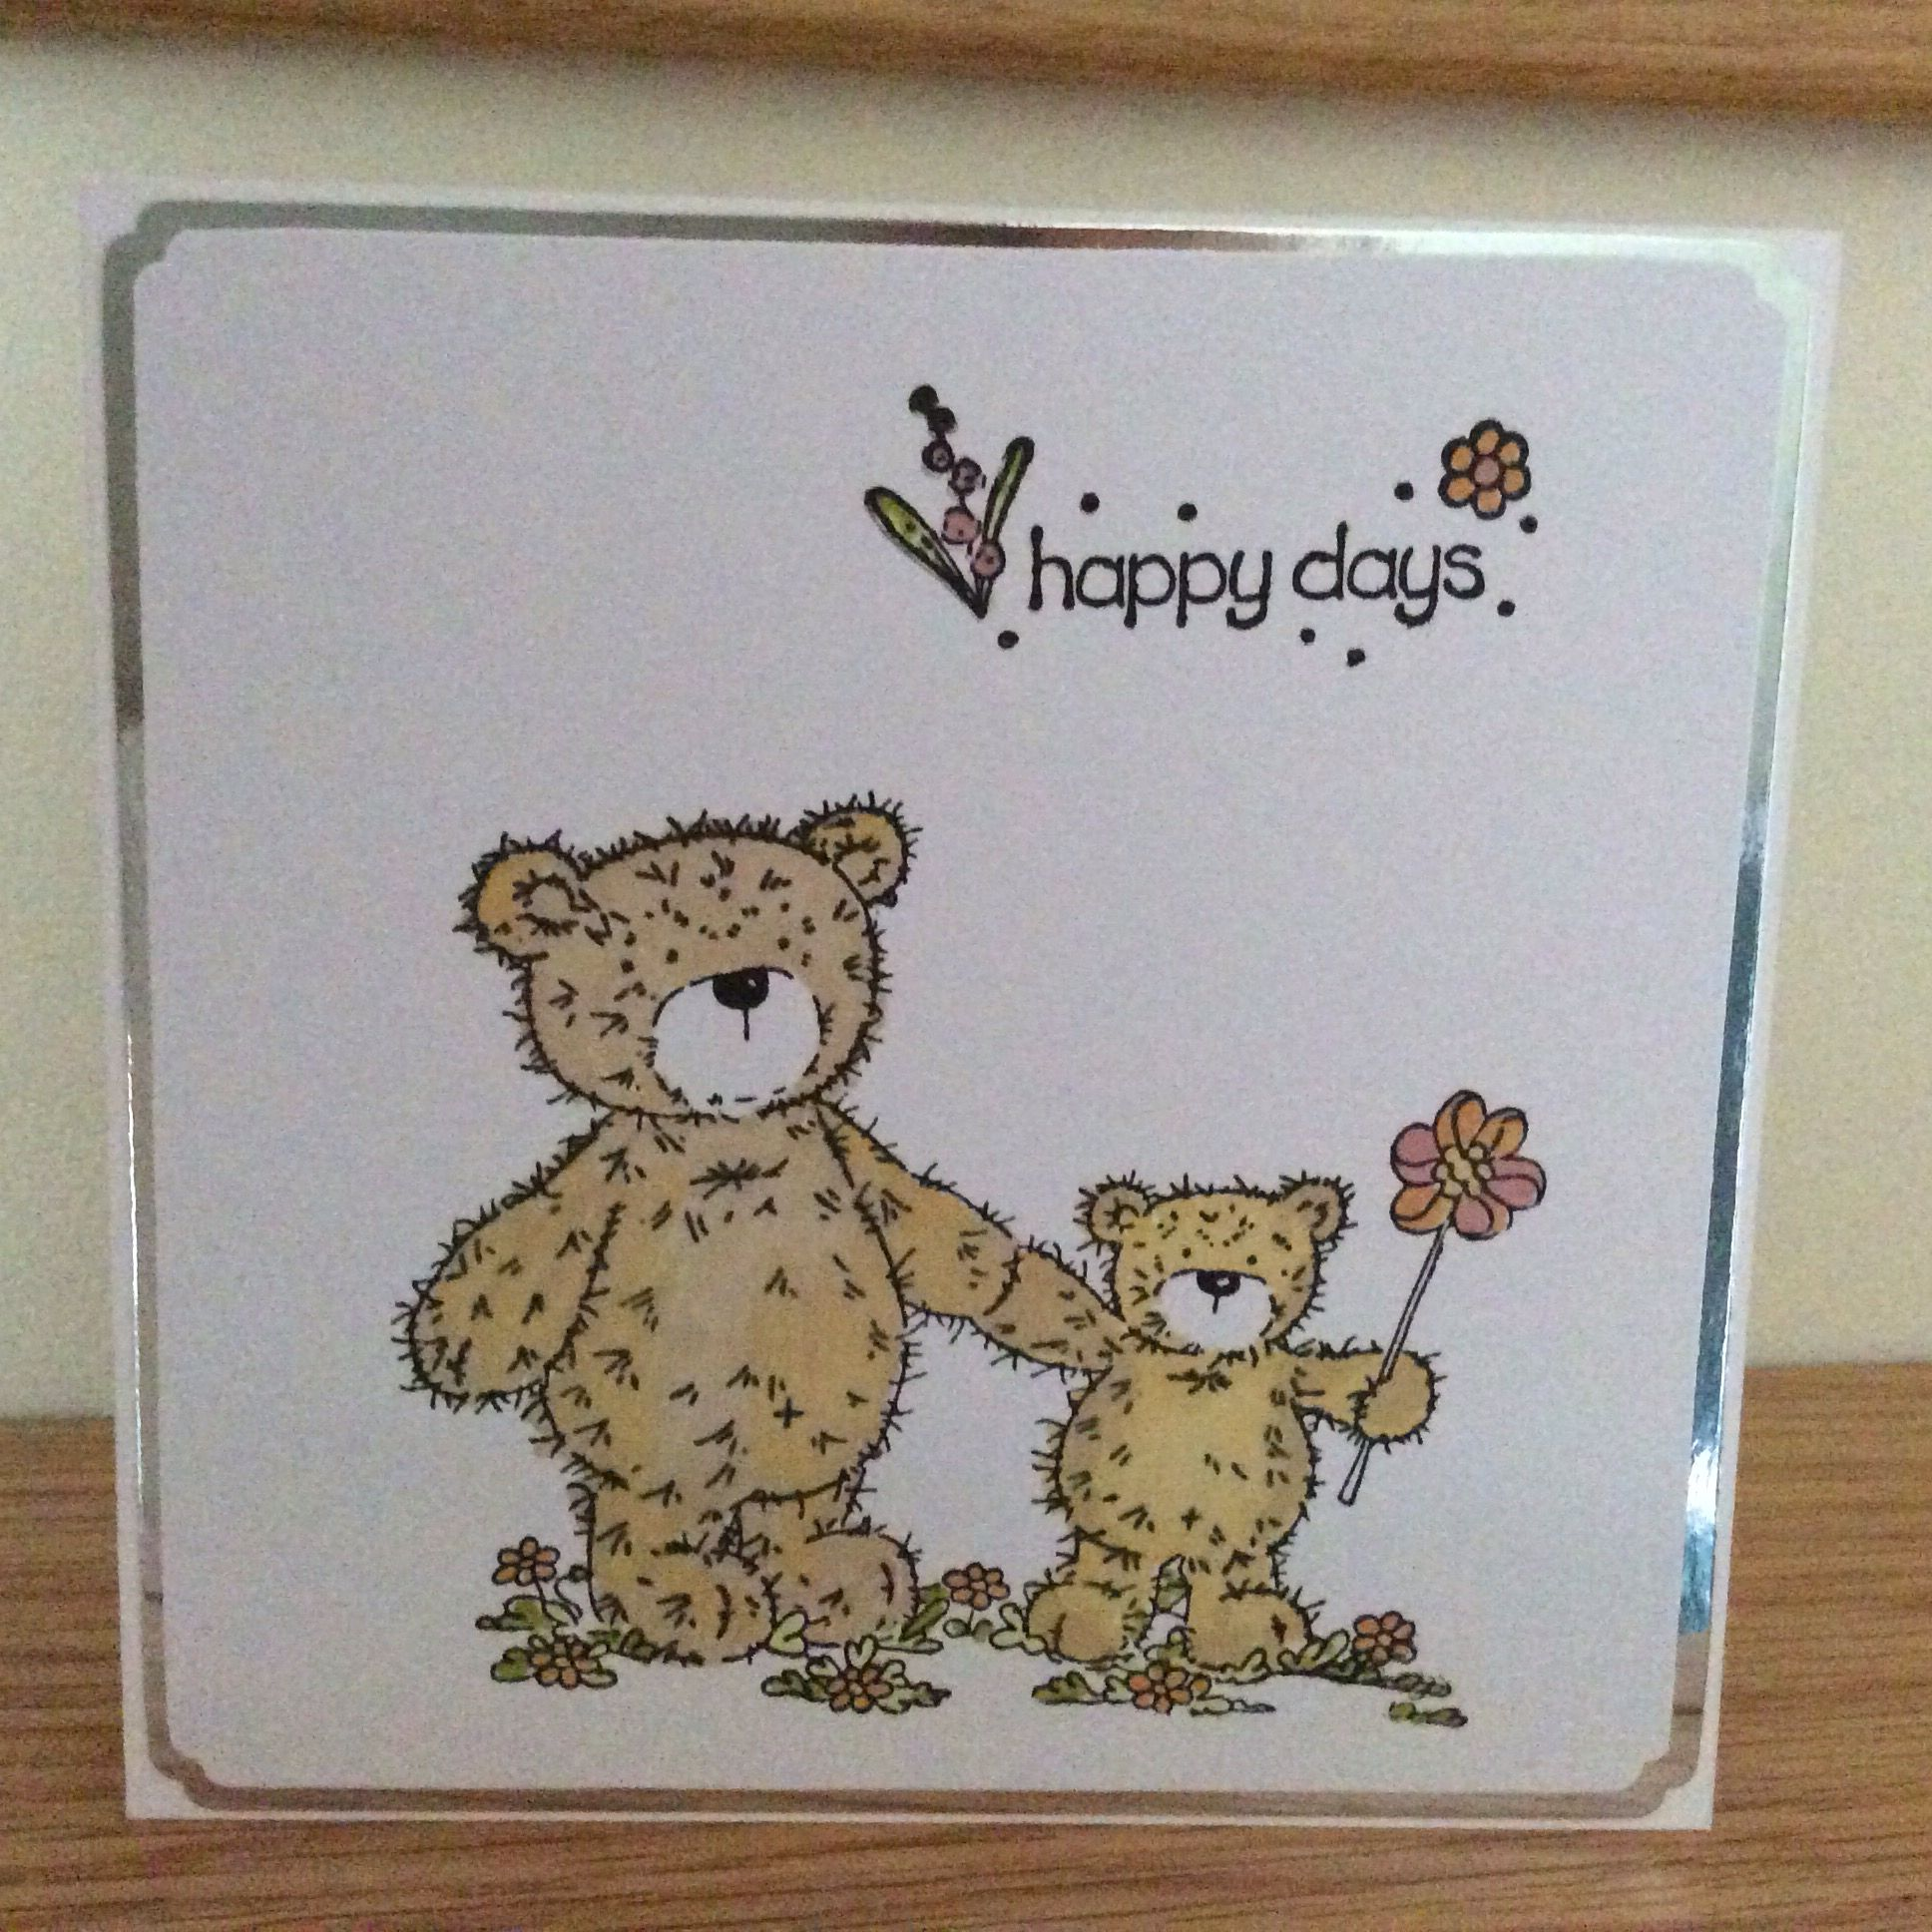 Stamped reddy card will add age for sale